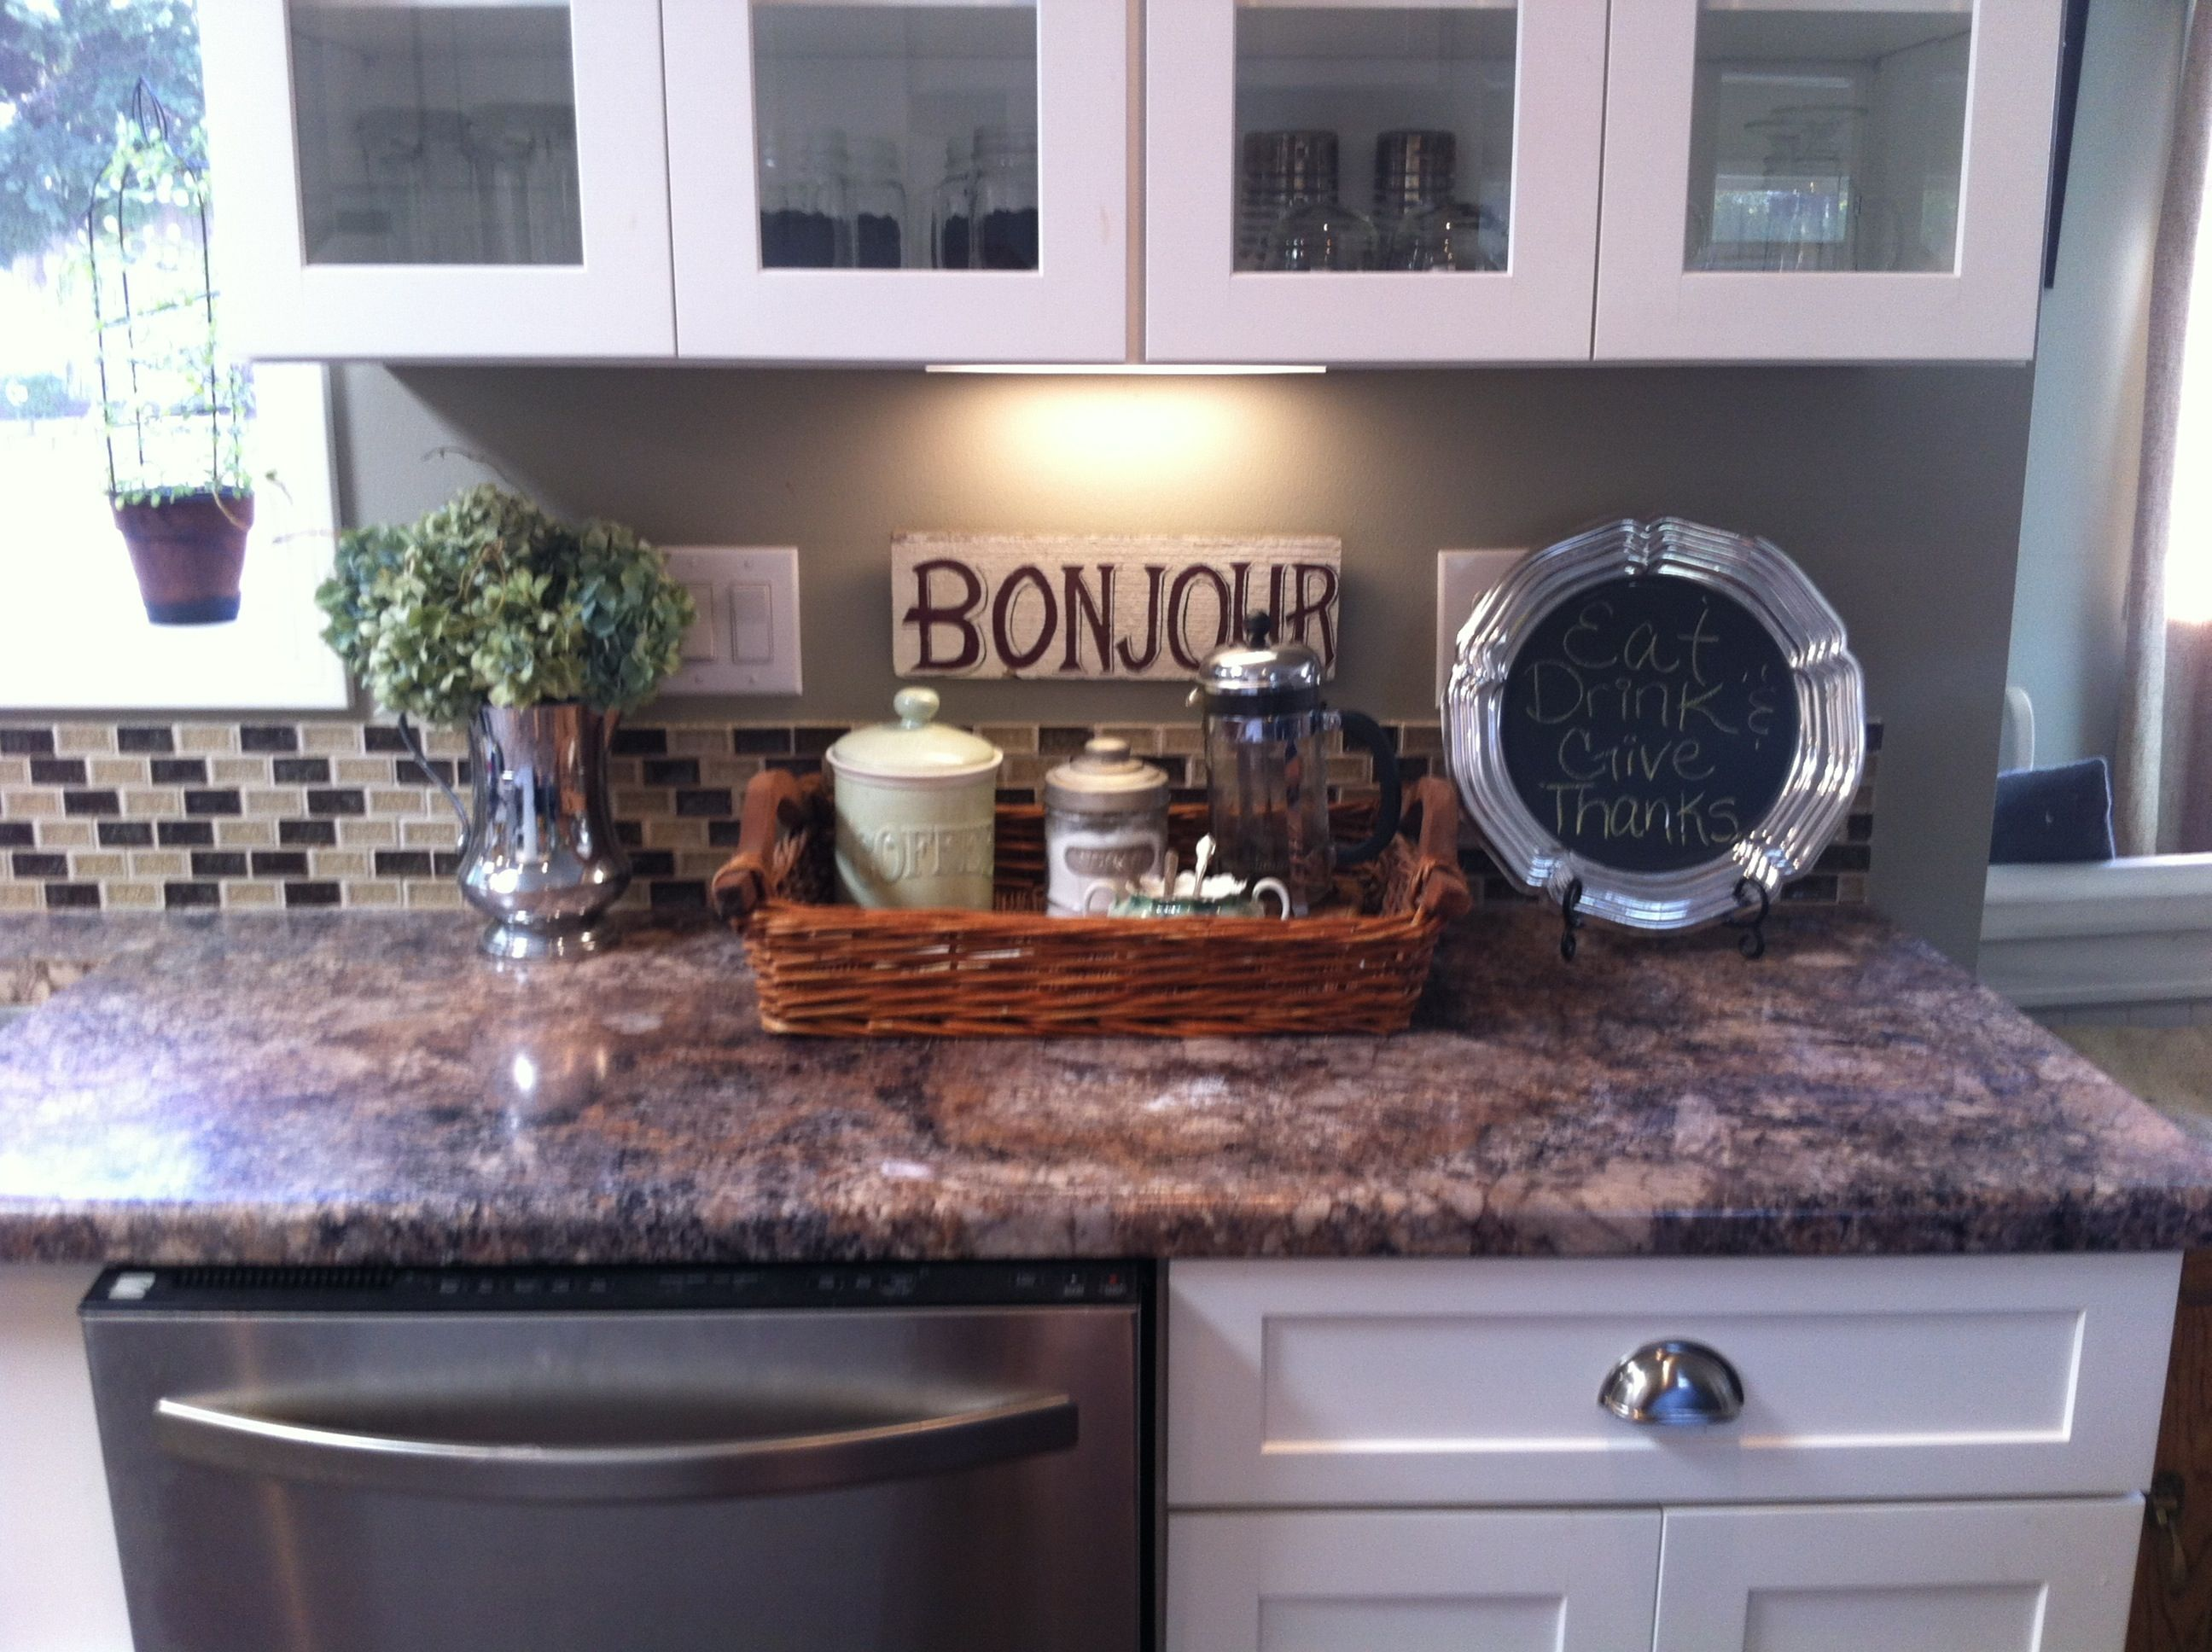 Kitchen counter decor | A pretty home is a happy home ...